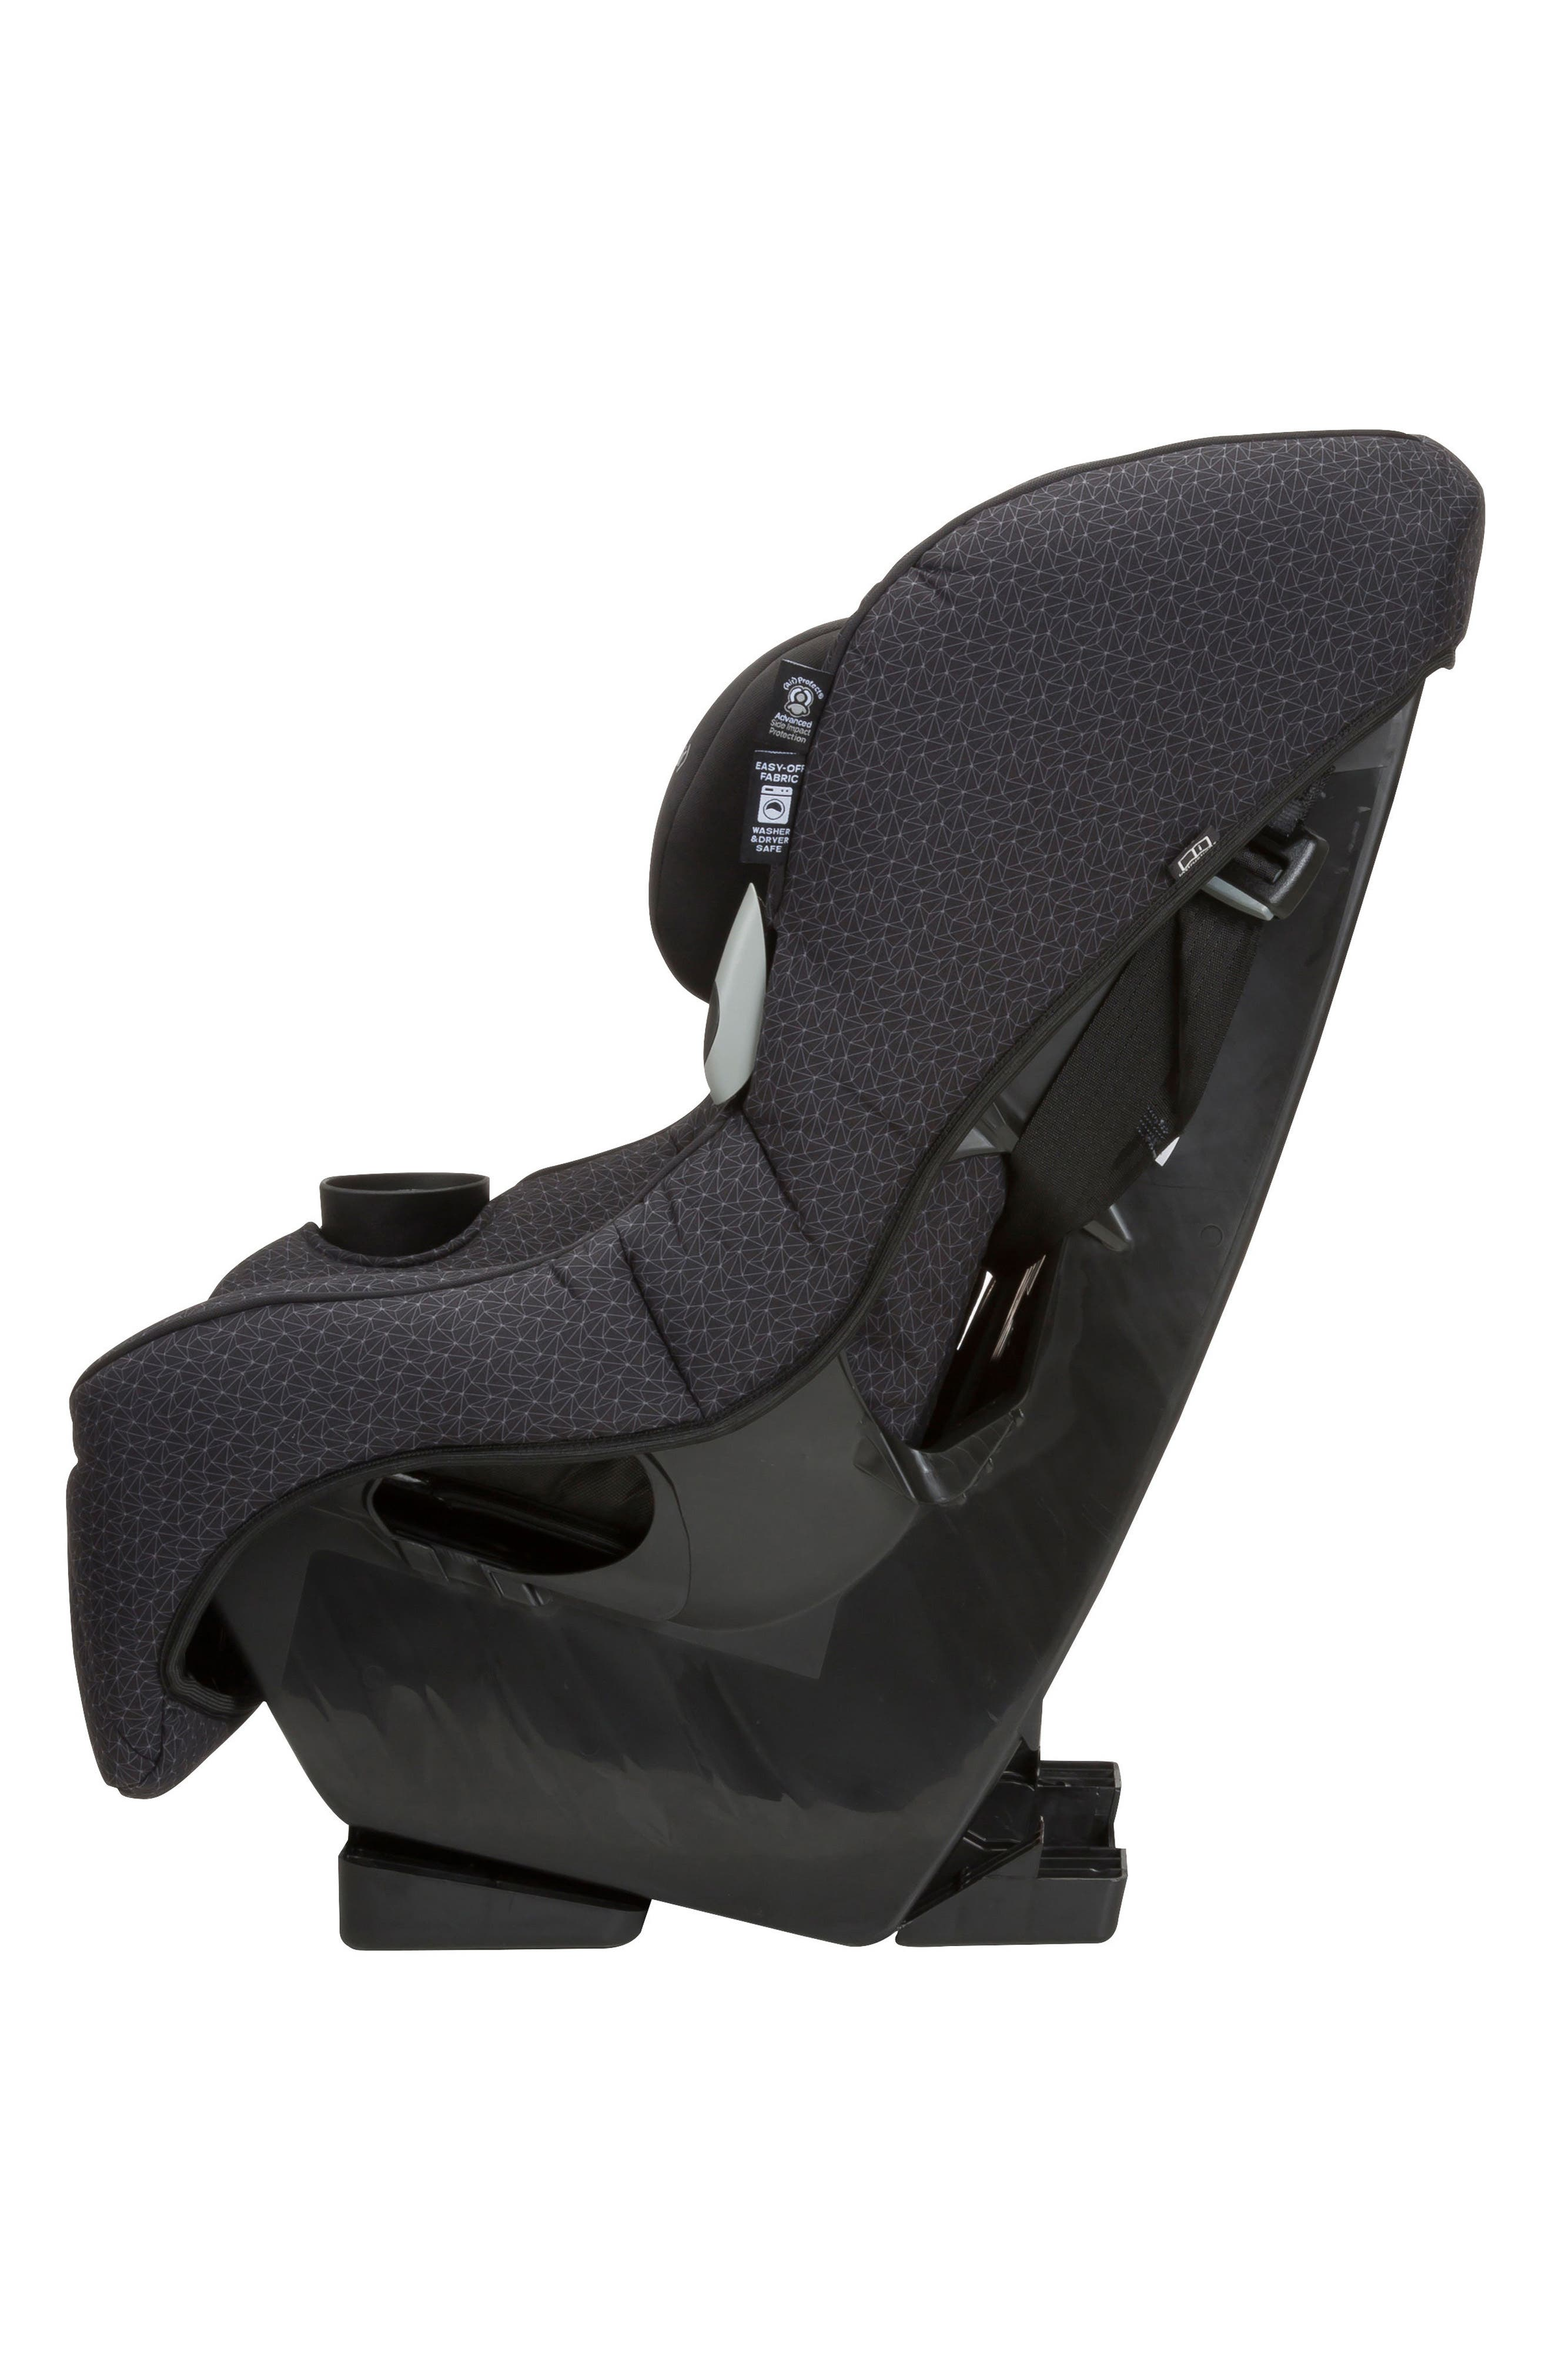 Pria<sup>™</sup> 85 Black Crystal Special Edition Car Seat,                             Alternate thumbnail 3, color,